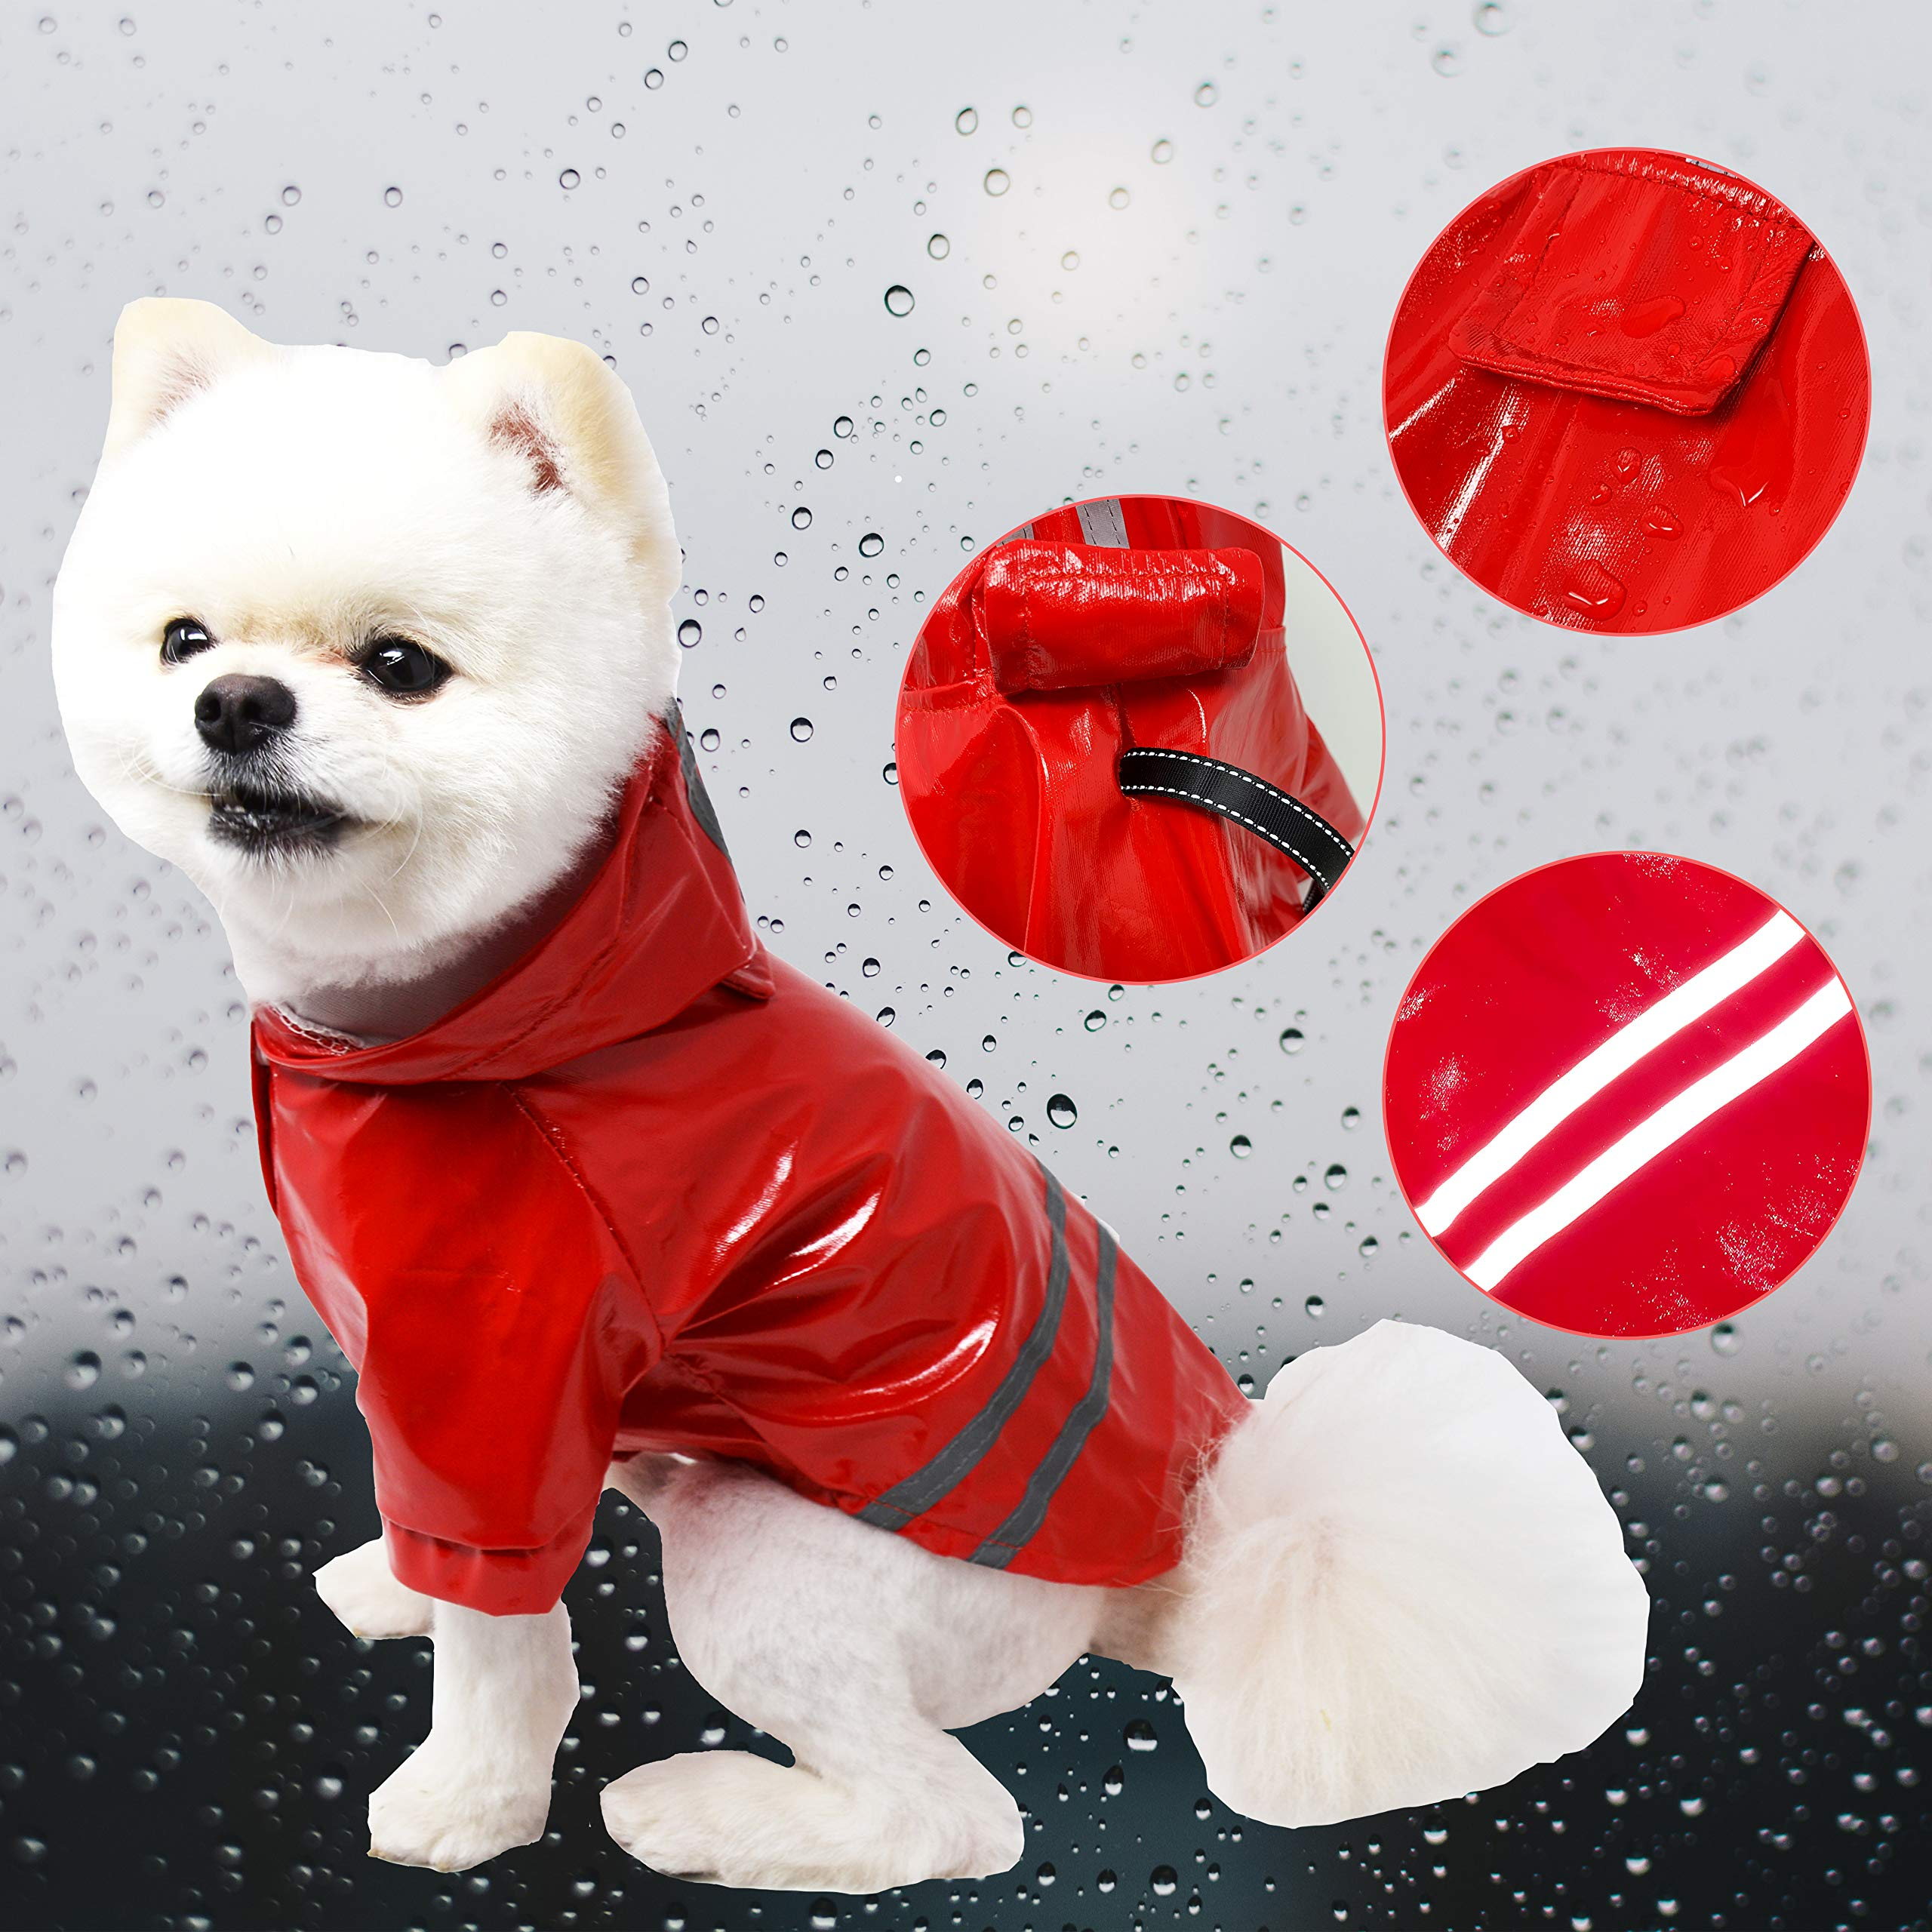 Cutie Pet Dog Raincoat Waterproof Coats for Dogs Lightweight Rain Jacket Breathable Rain Poncho Hooded Rainwear with Safety Reflective Stripes (XL, Red)